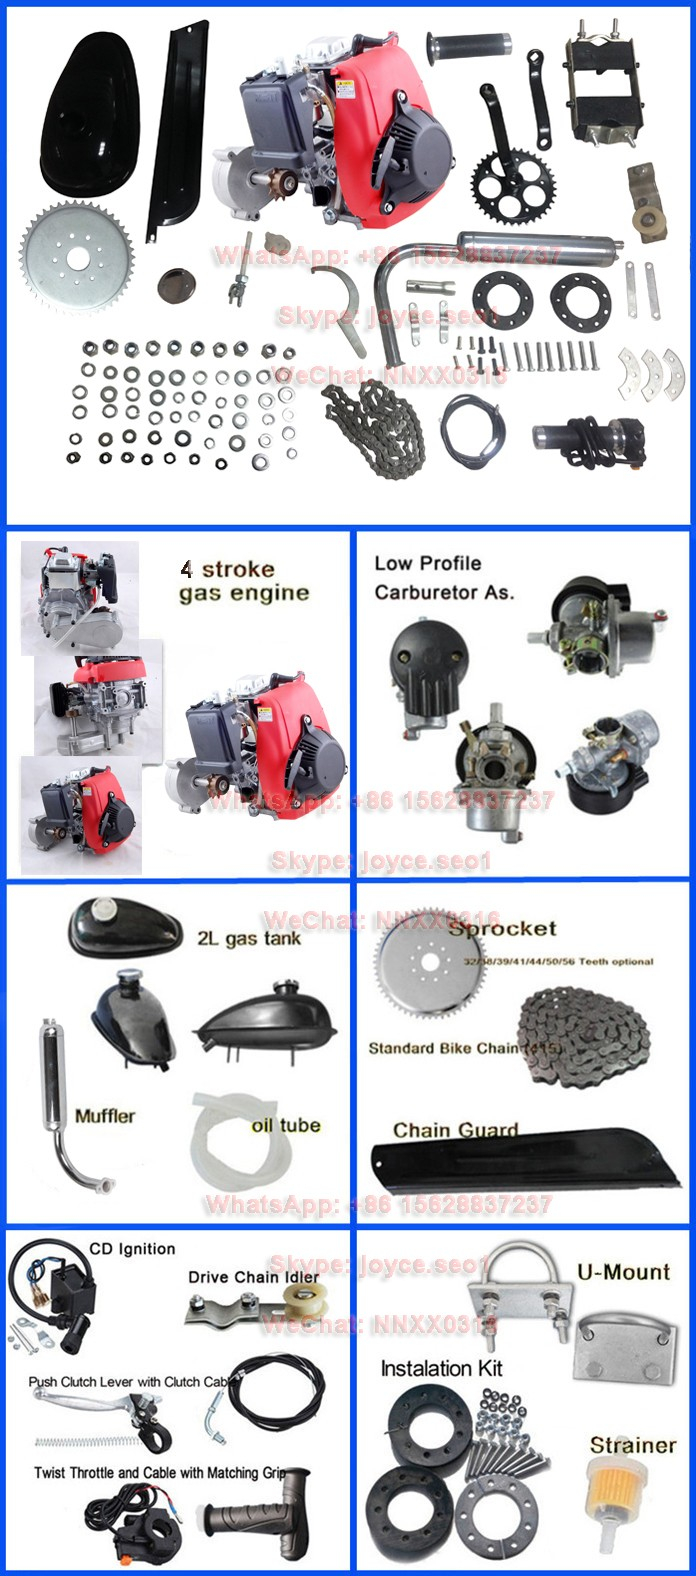 Hot sale 4 cycle moped 49cc 4 stroke motorized bicycle engine kit